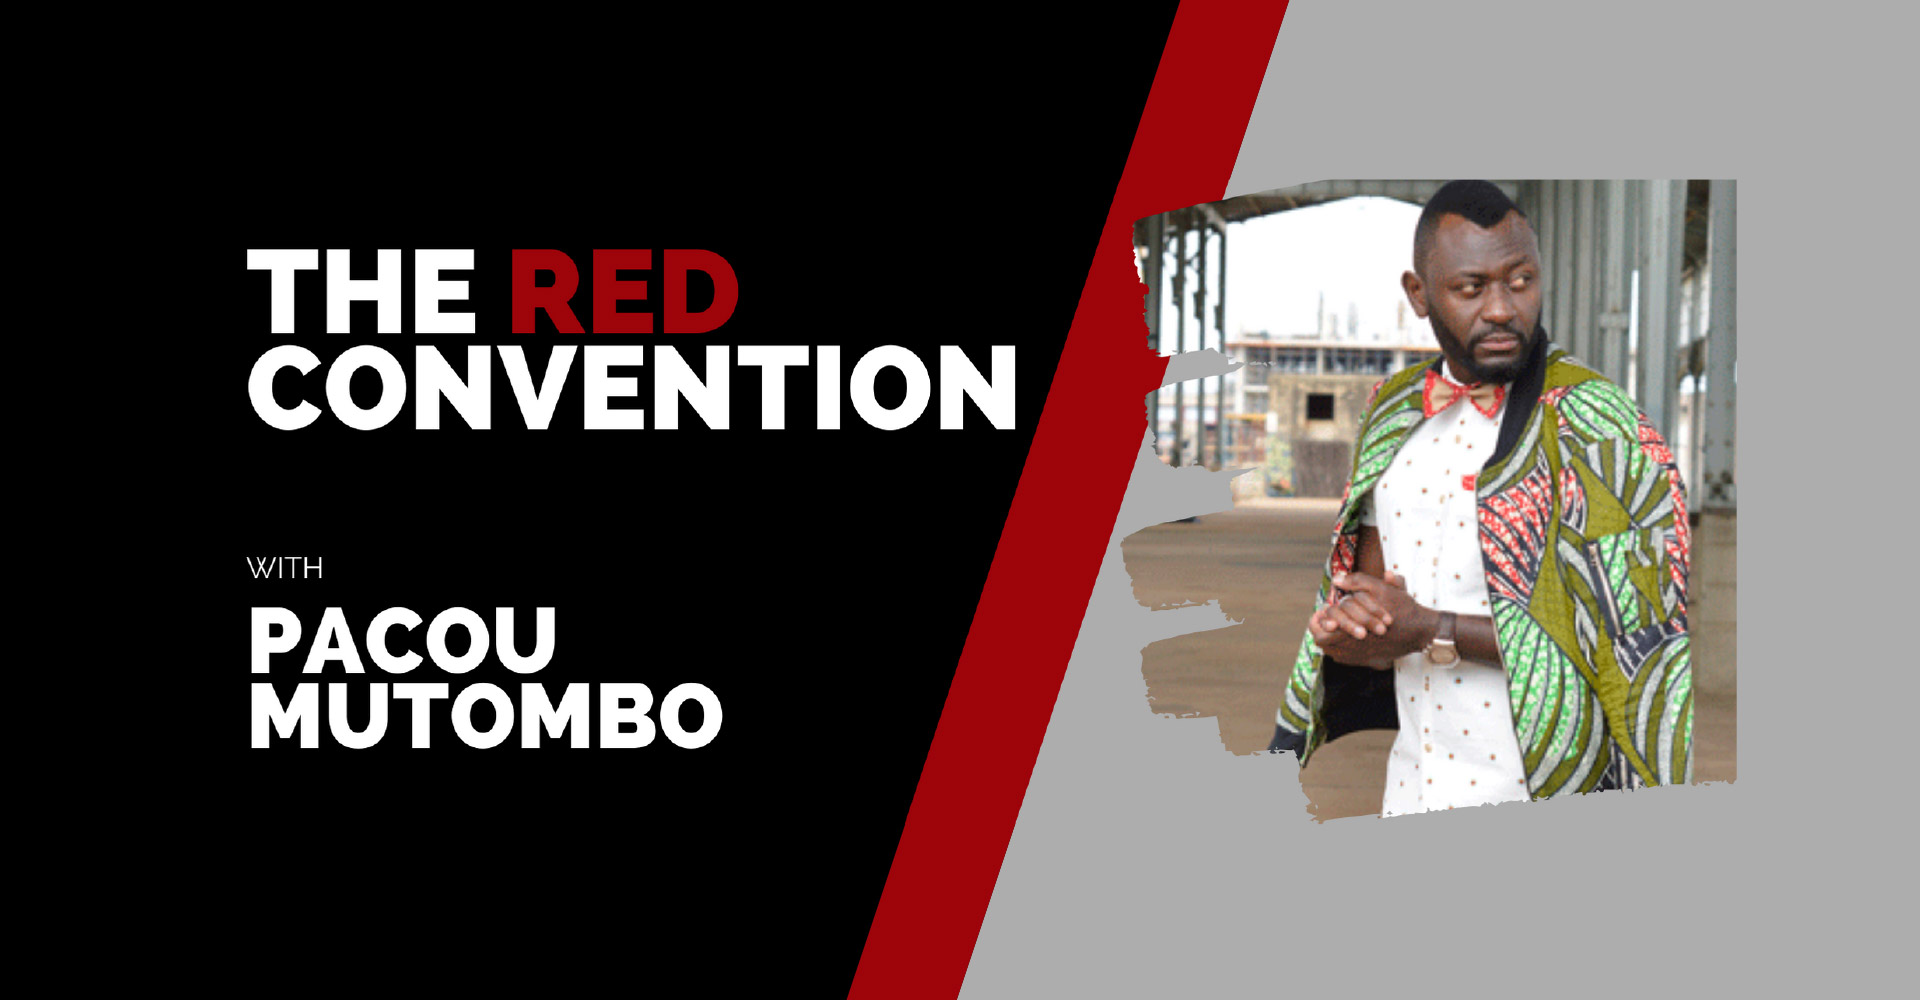 The Red Convention Pacou Mutombo